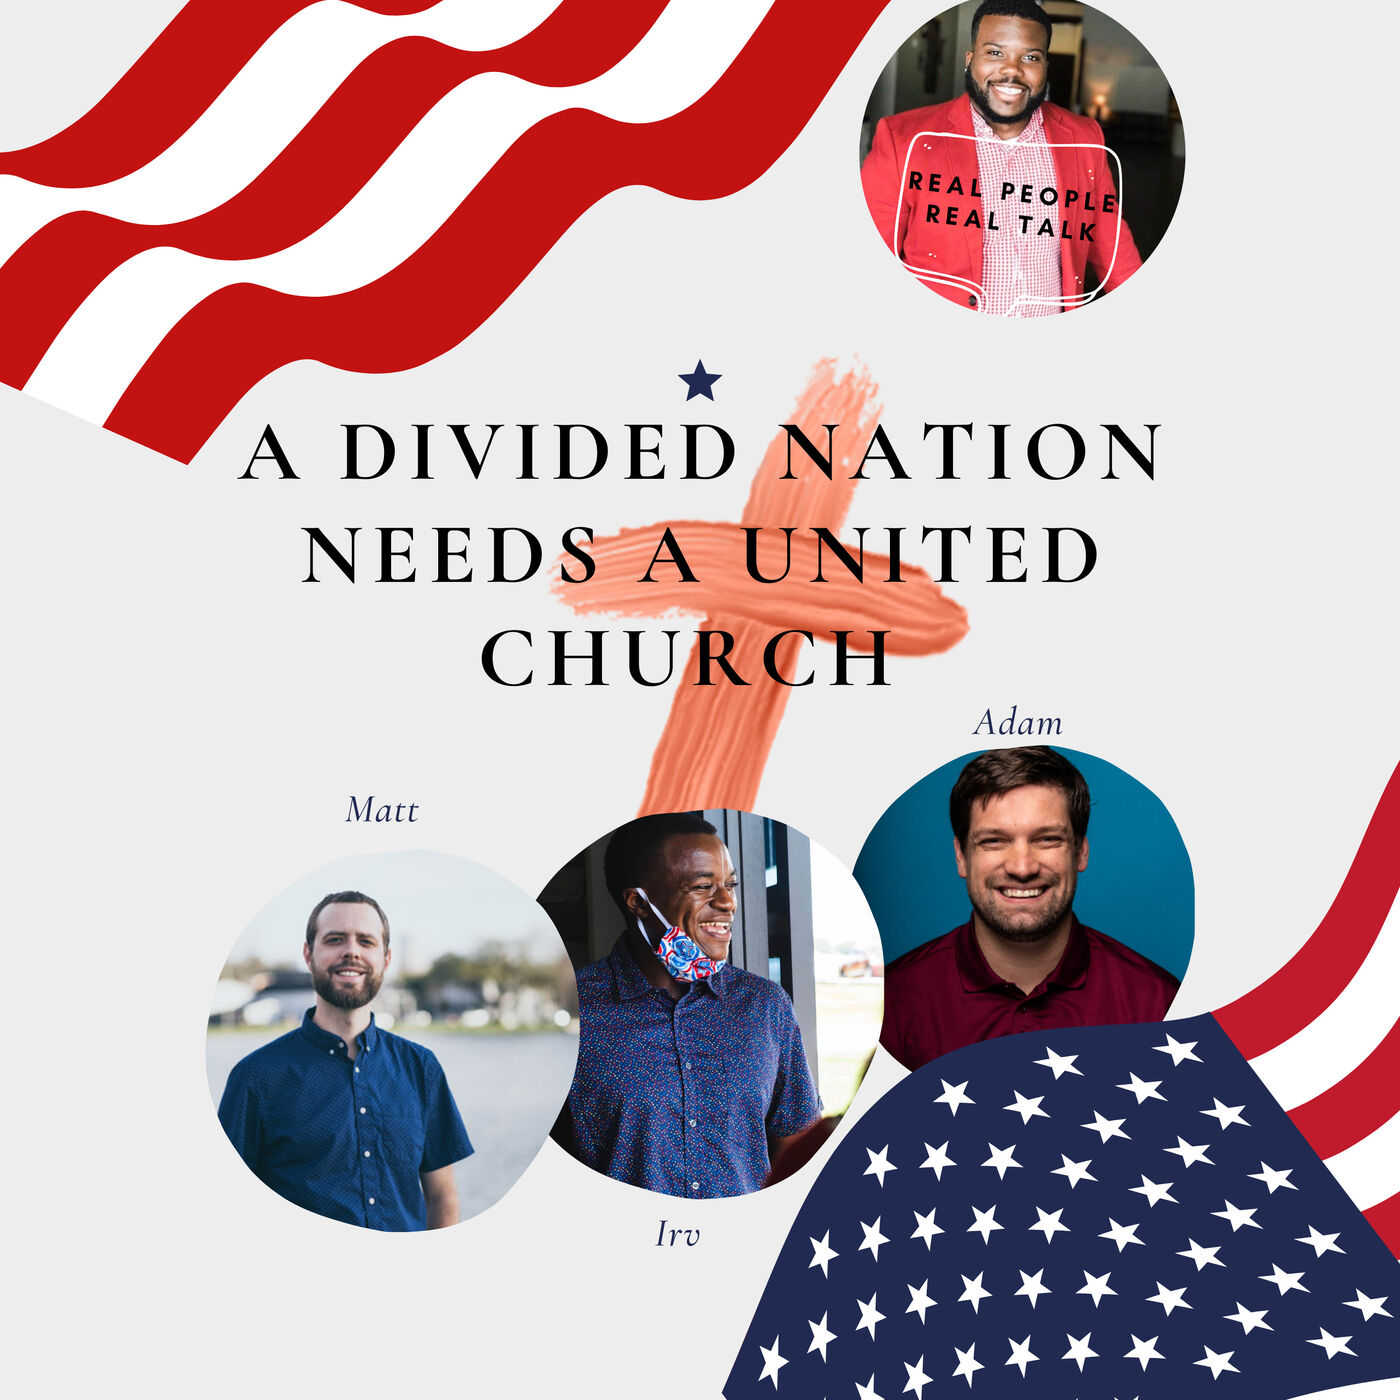 A Divided Nation Needs a United Church.